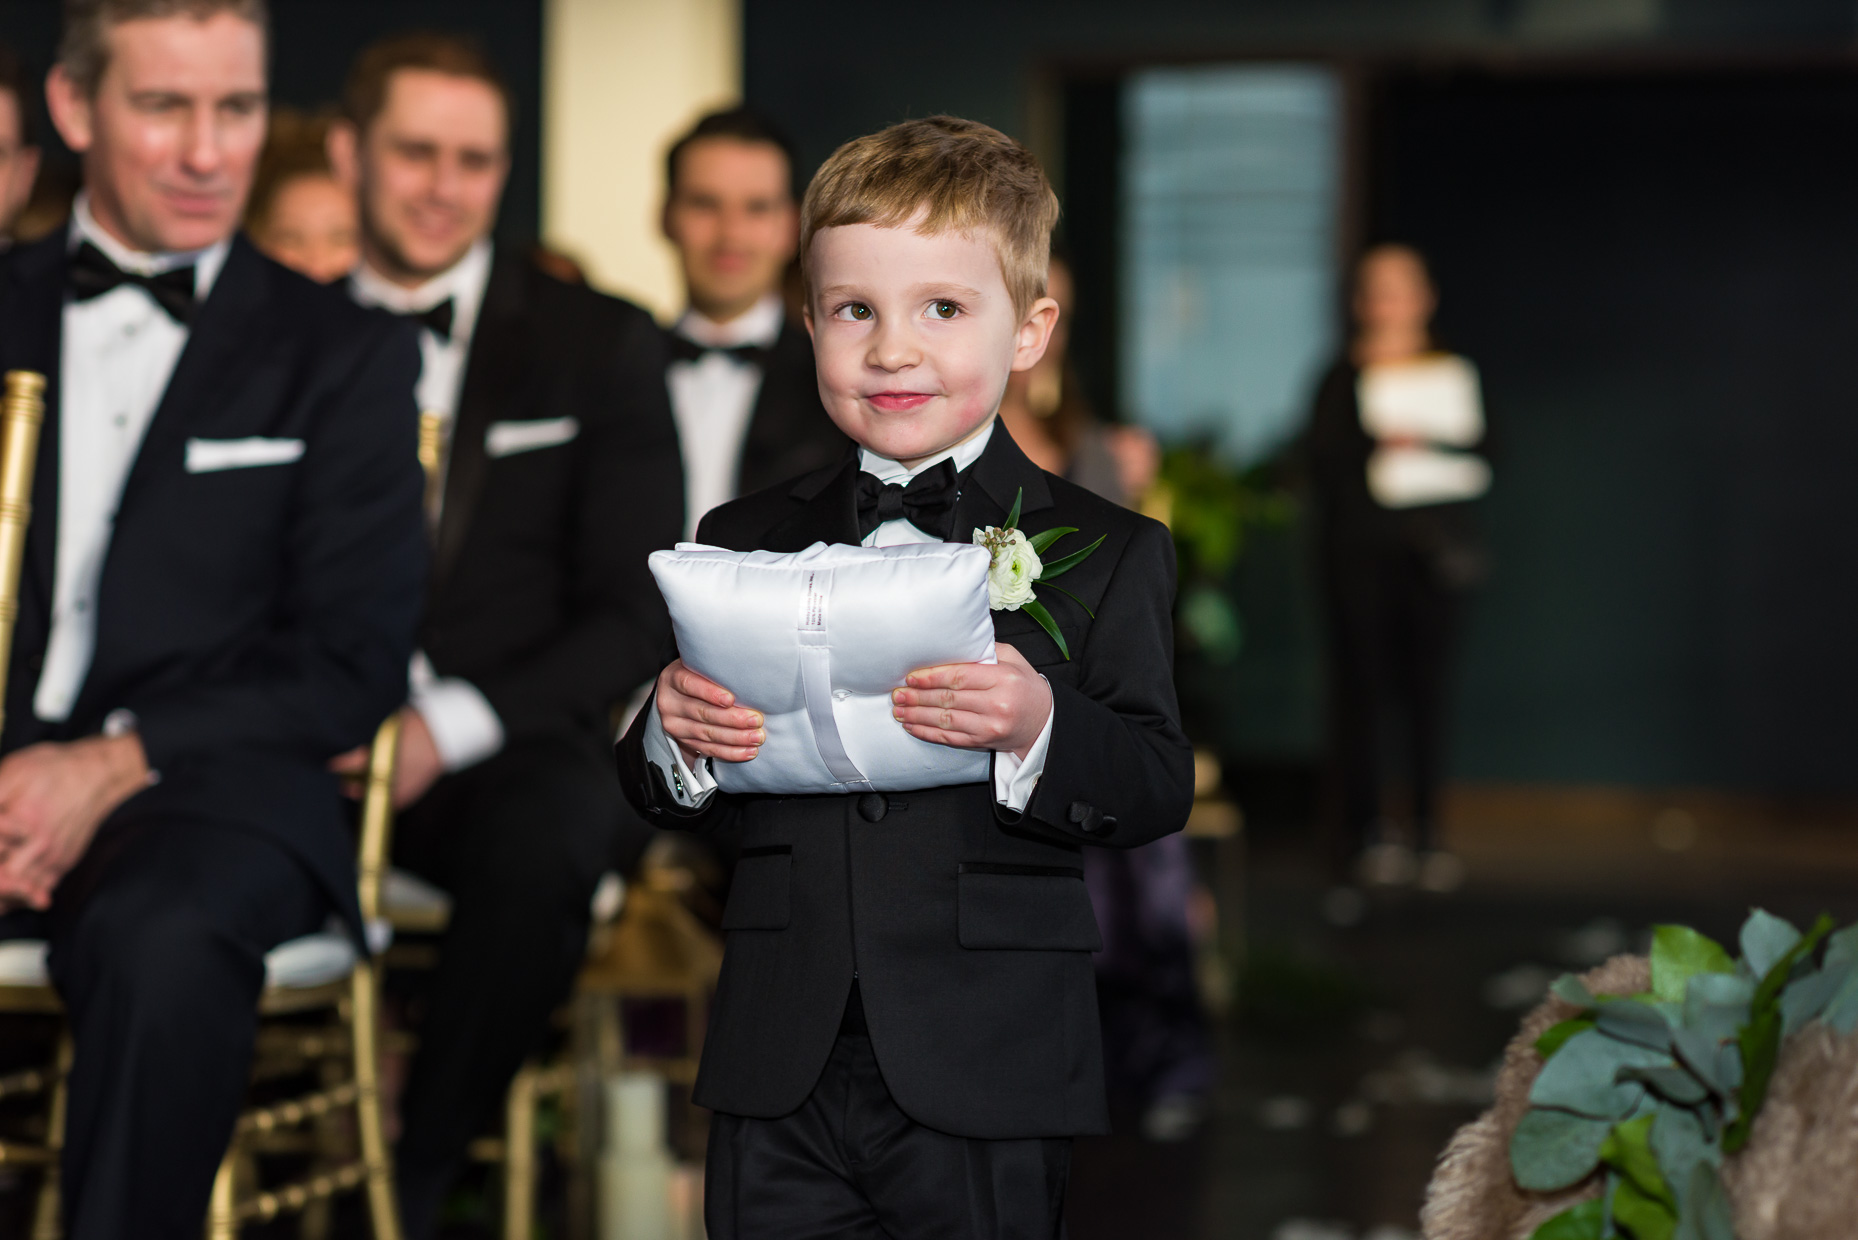 Austin-Wedding-Photographers-Downtown-Brazos-Hall-ring-bearer-tuxedo-boy-cute